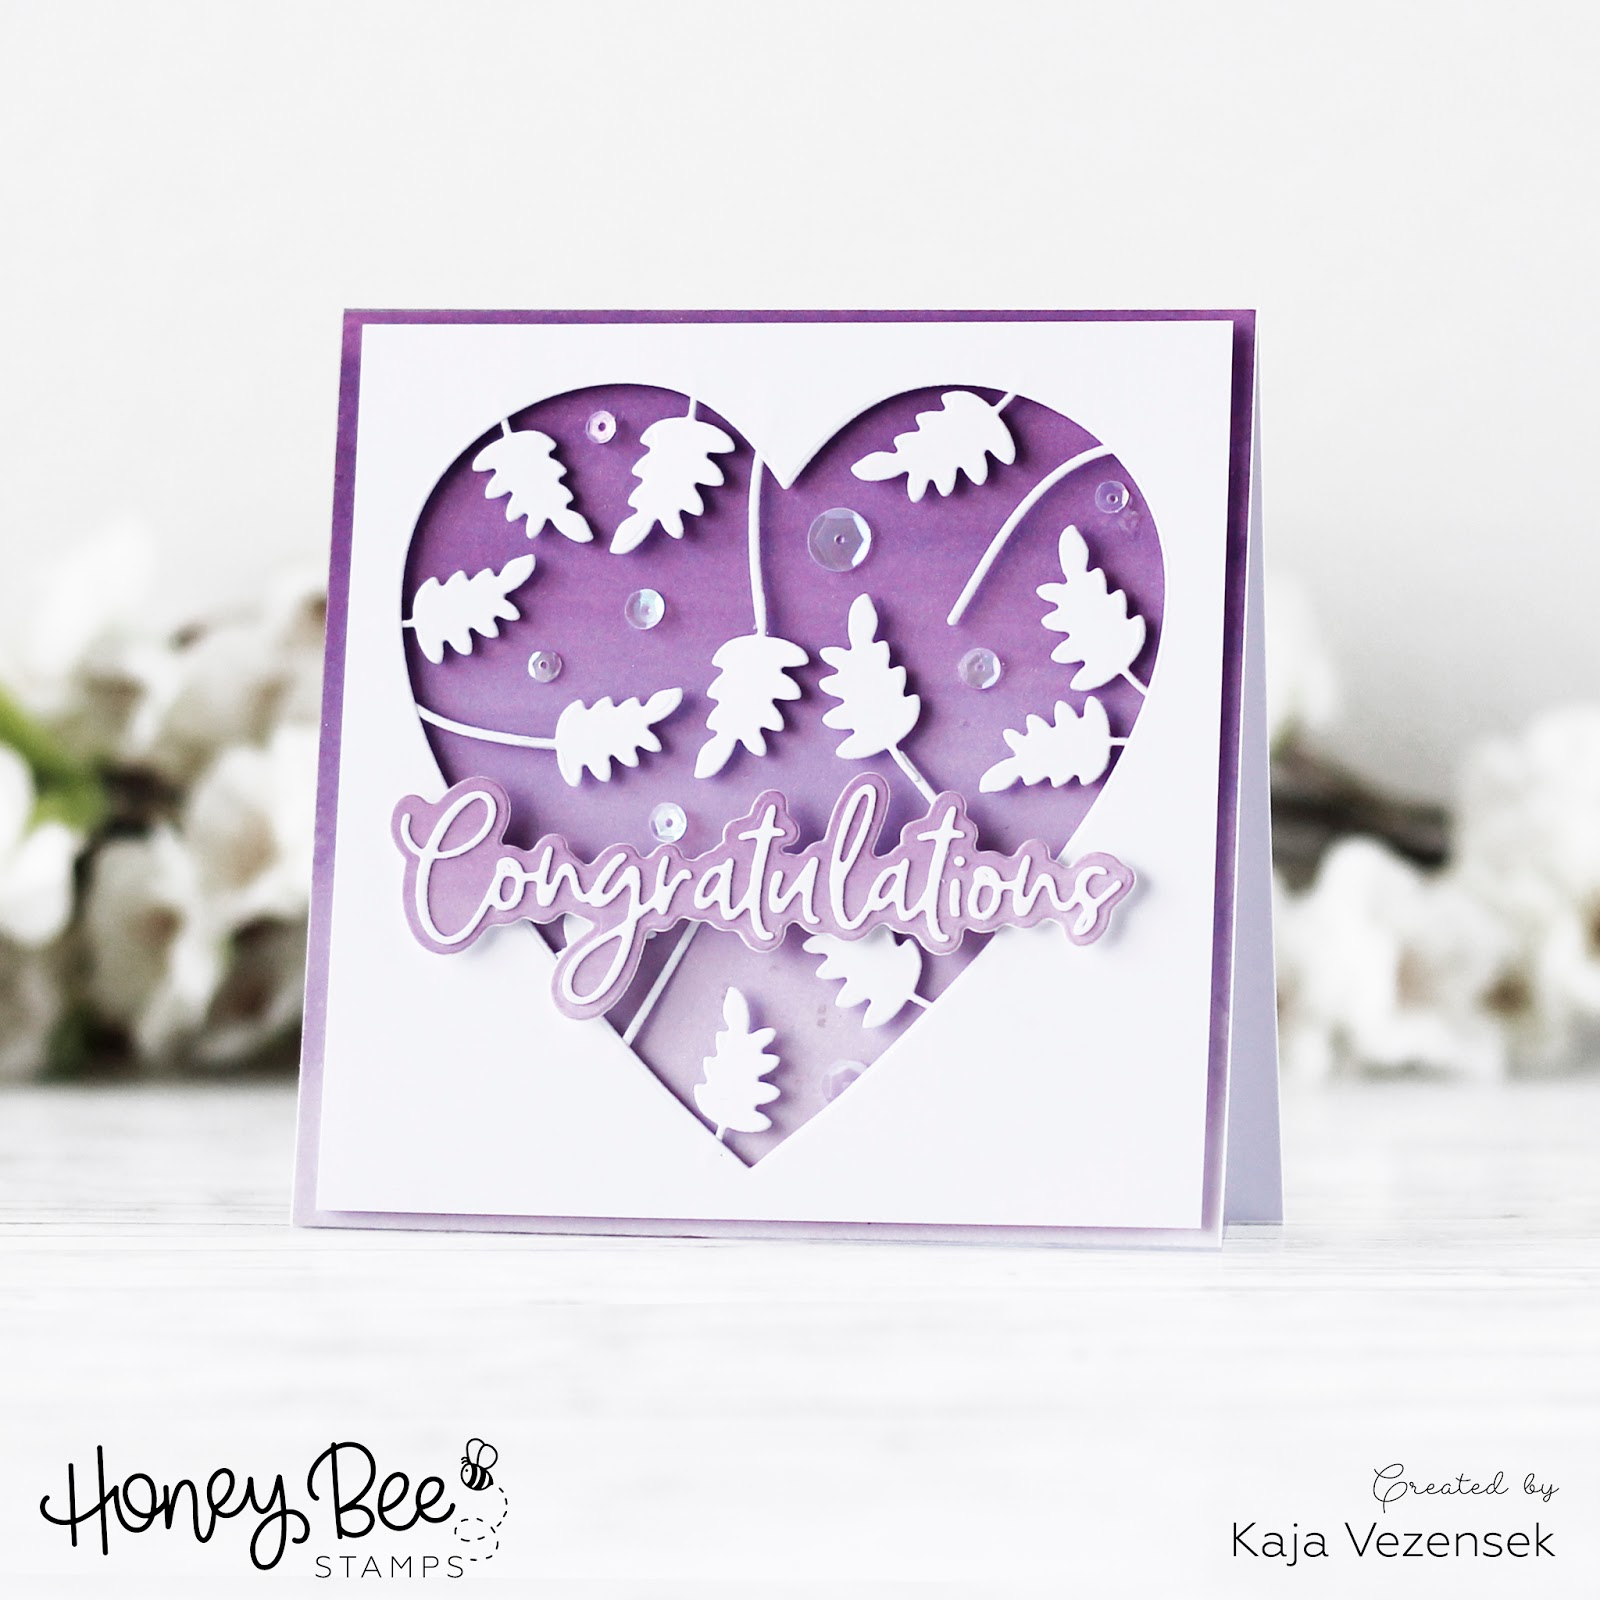 A card without stamping | HONEY BEE